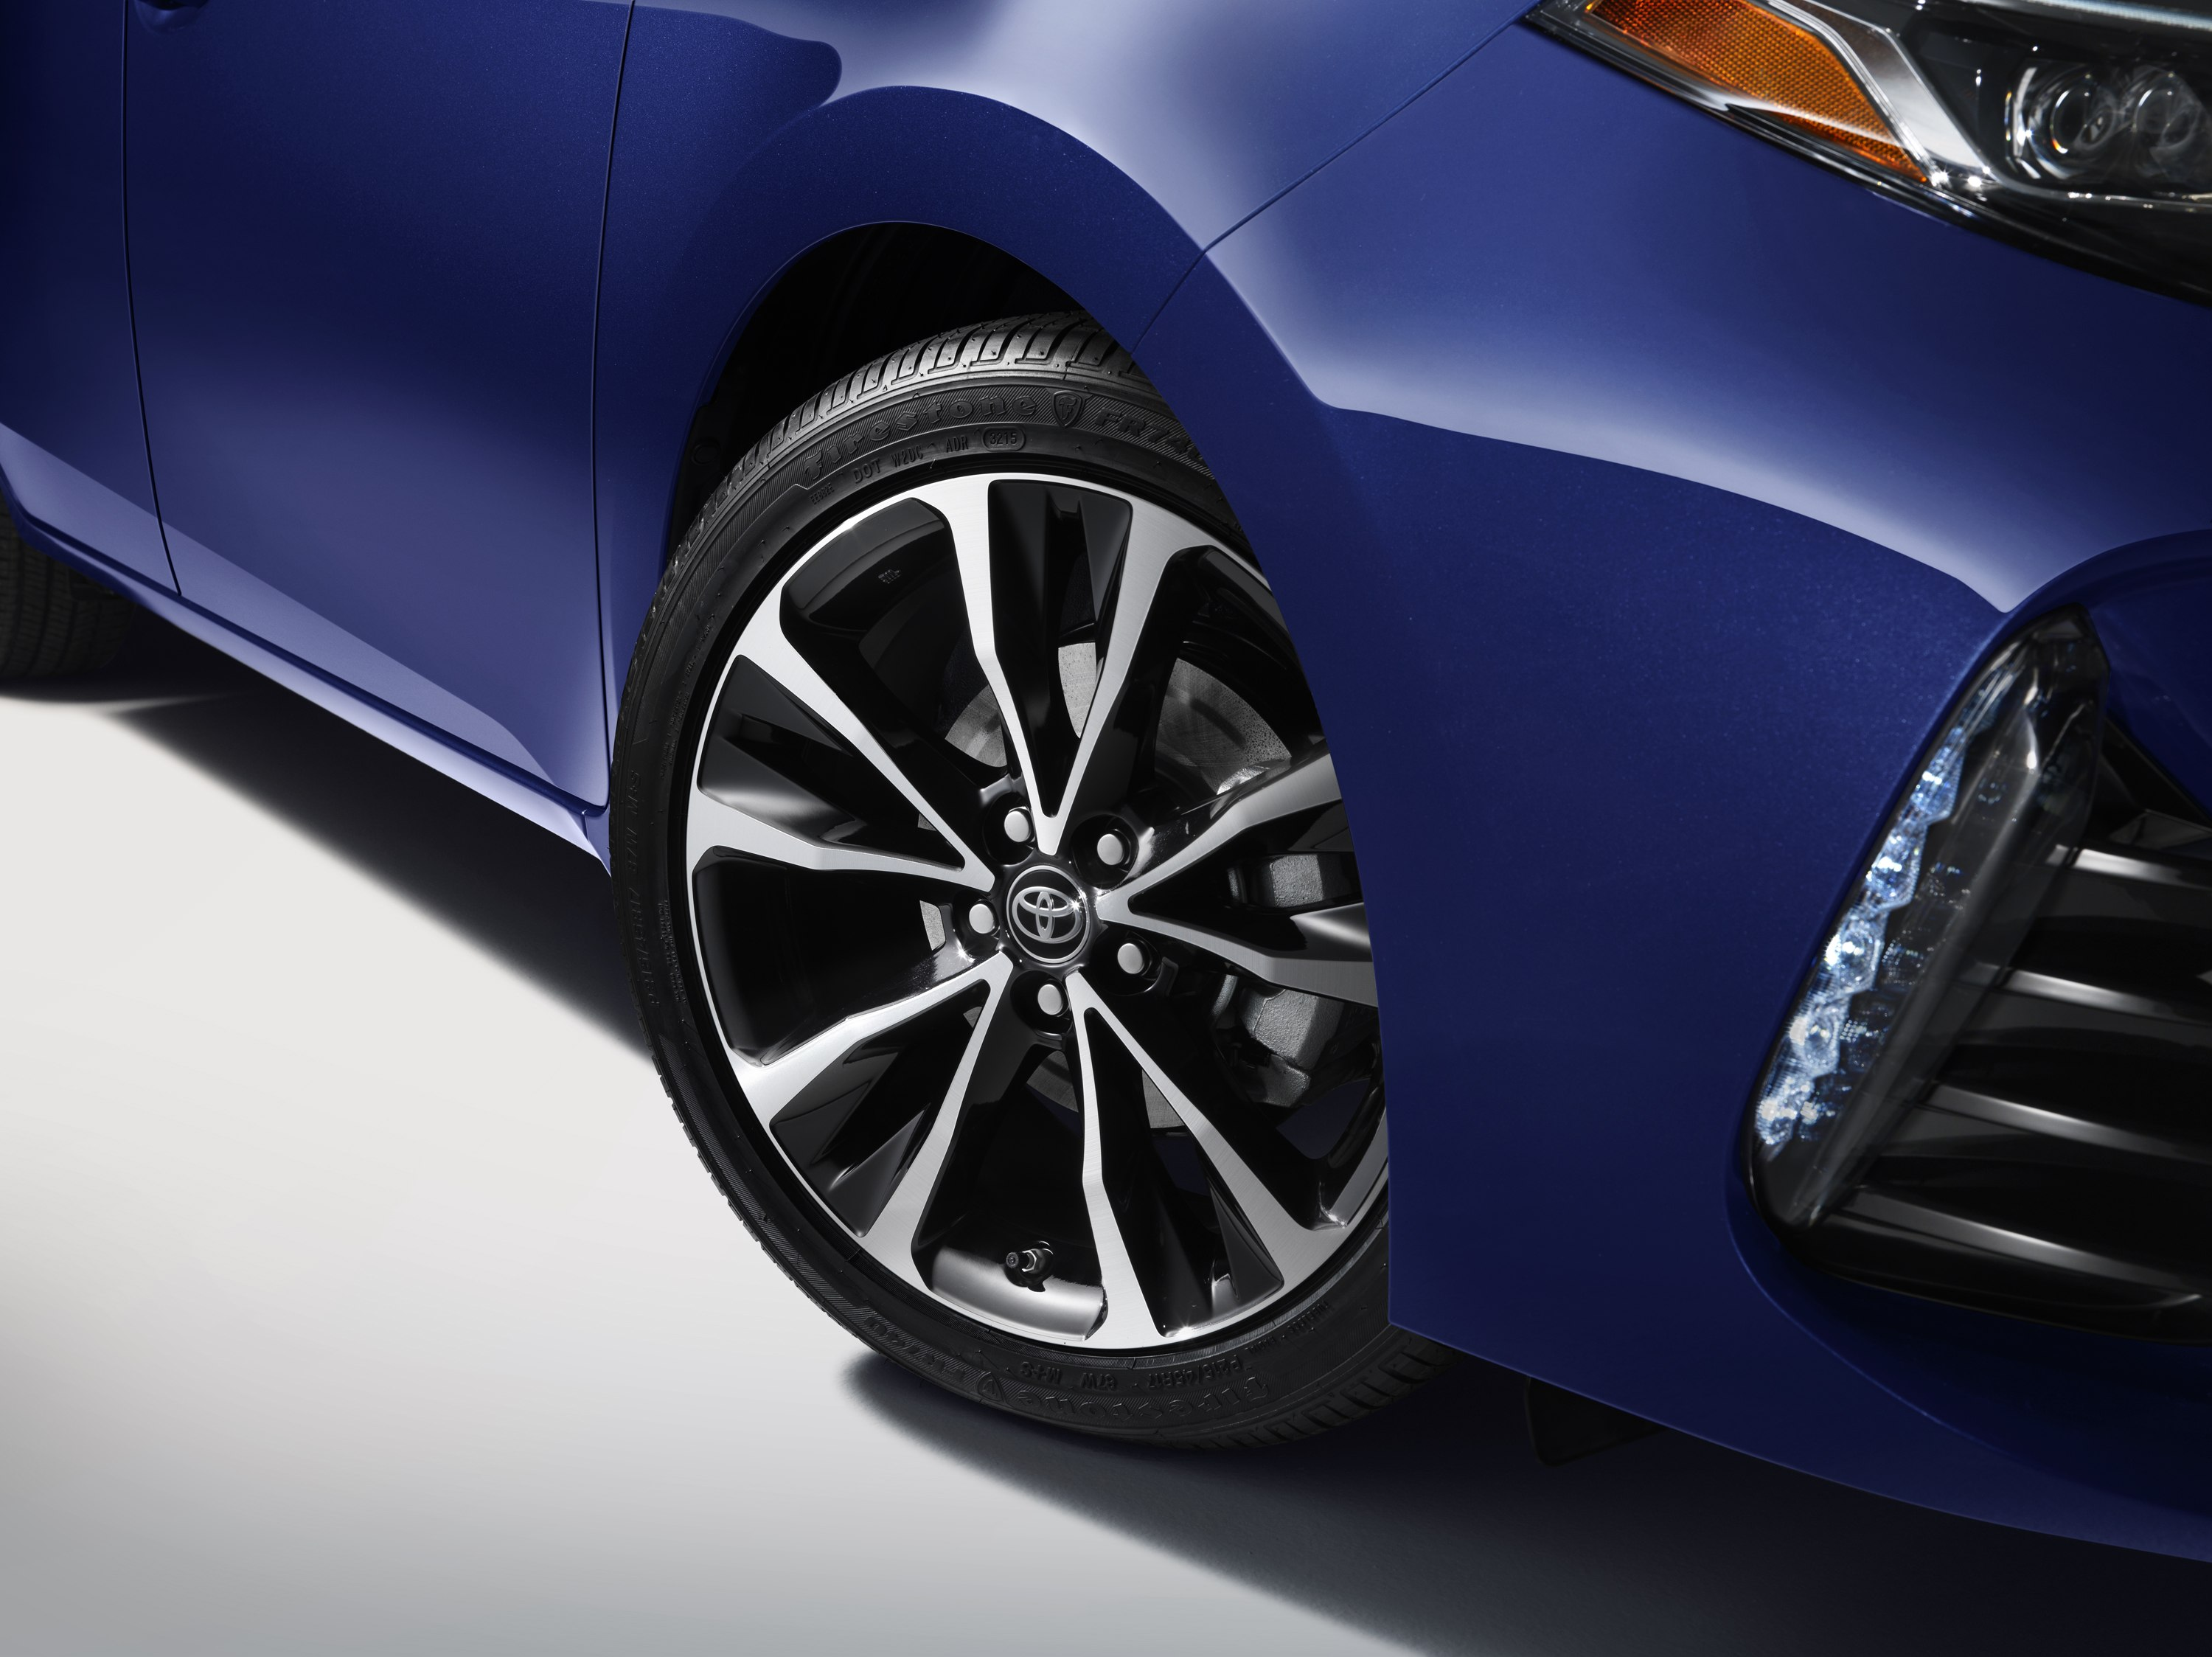 2017 Toyota Corolla Wheels @ Milton Toyota in Greater Toronto Area